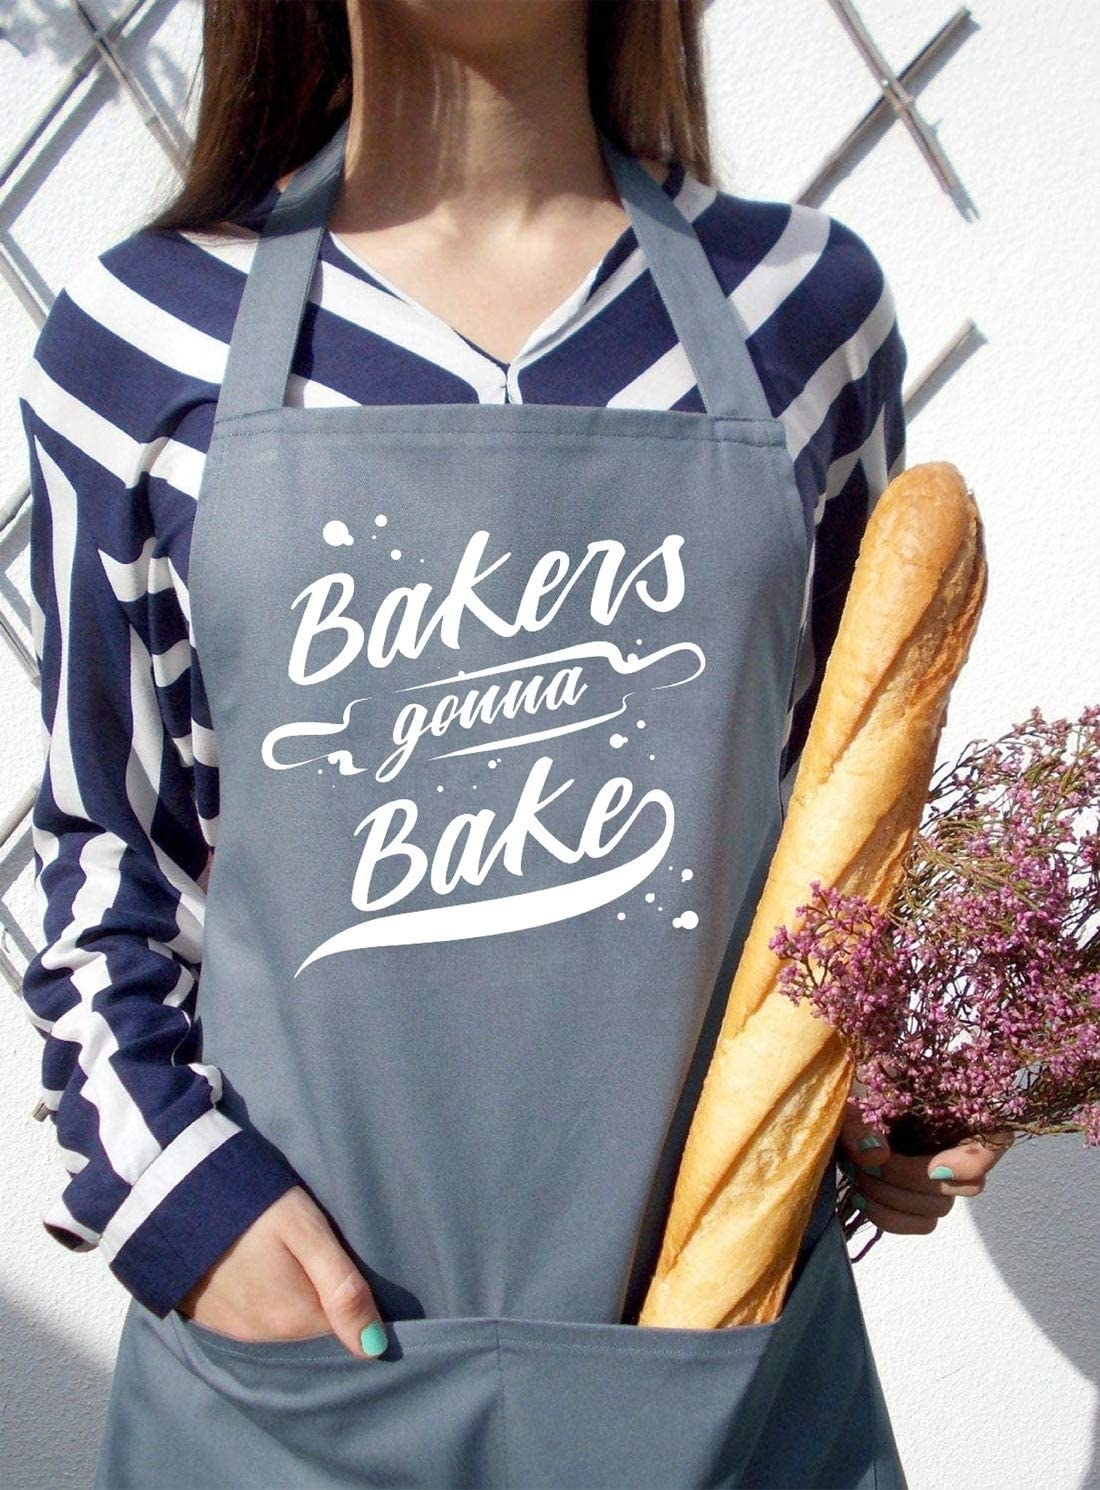 A person wearing an apron that says bakers gonna bake on it